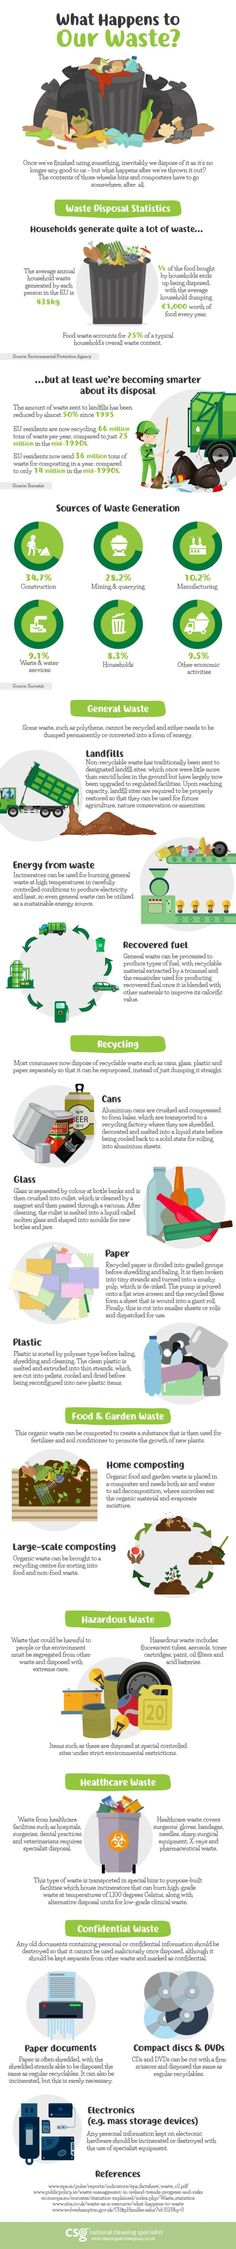 This infographic outlines the disposal process for several different categories of waste and, from reading through it, it's good to see that the amount of waste ending up in landfills has decreased drastically.